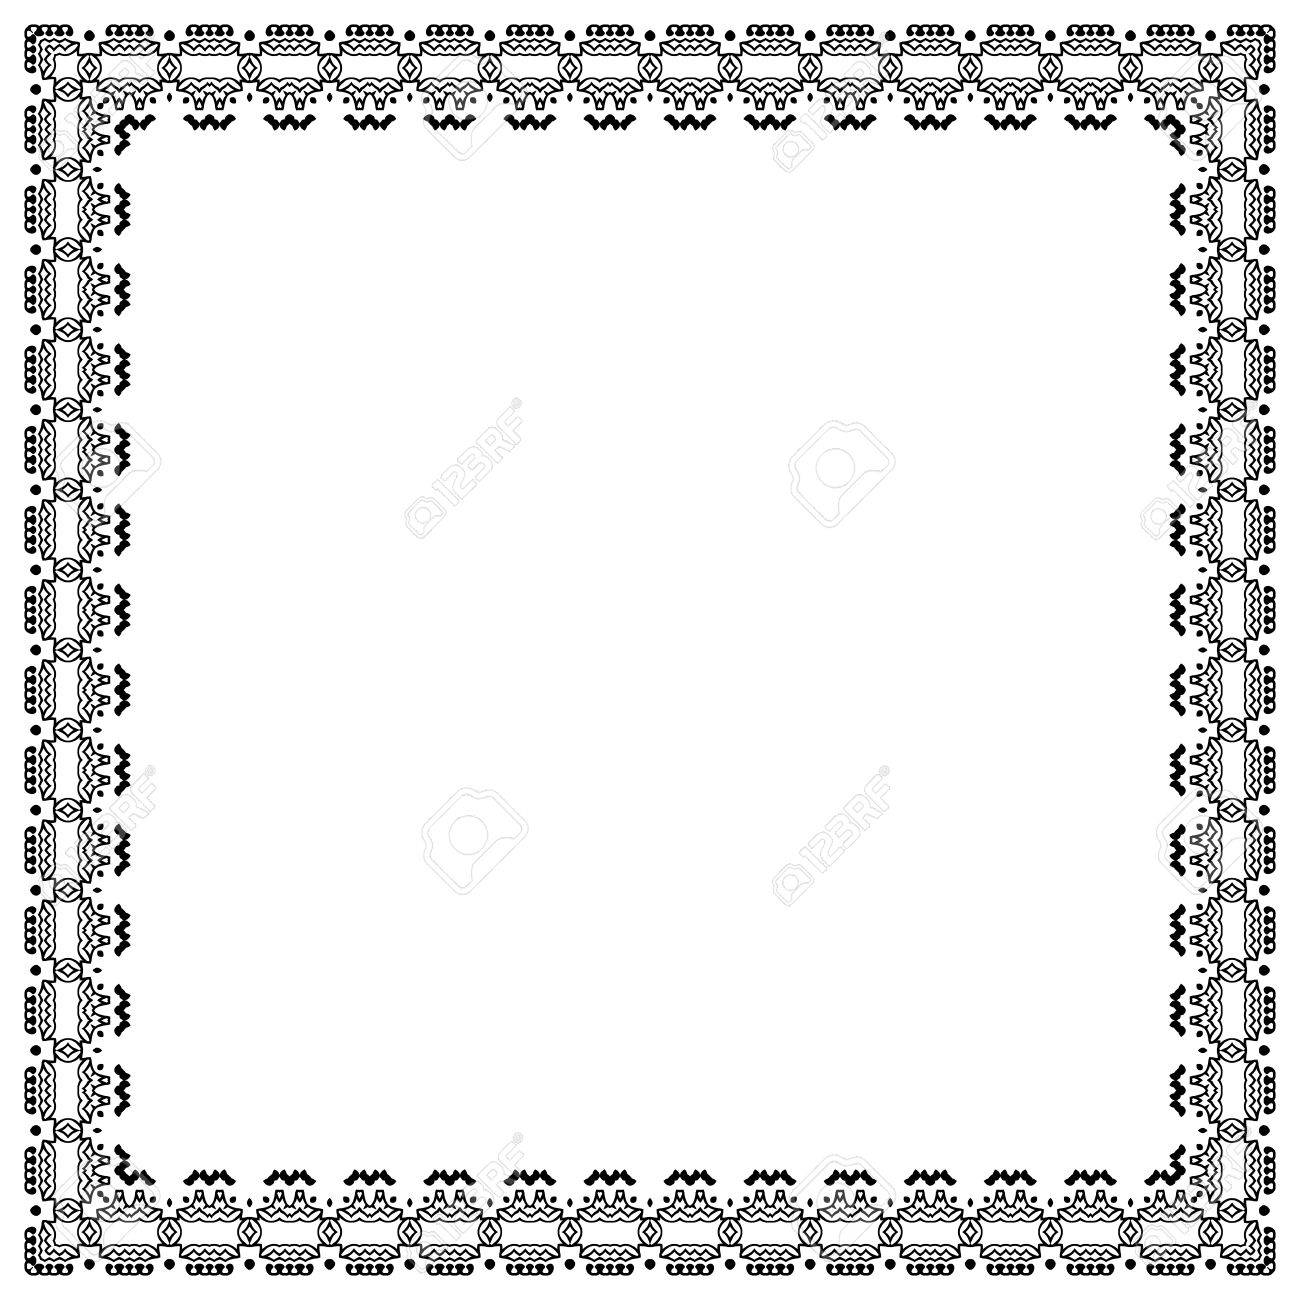 vintage frame border. Decorative Vintage Frame. Border Pattern Vector Stock - 56239551 Frame O